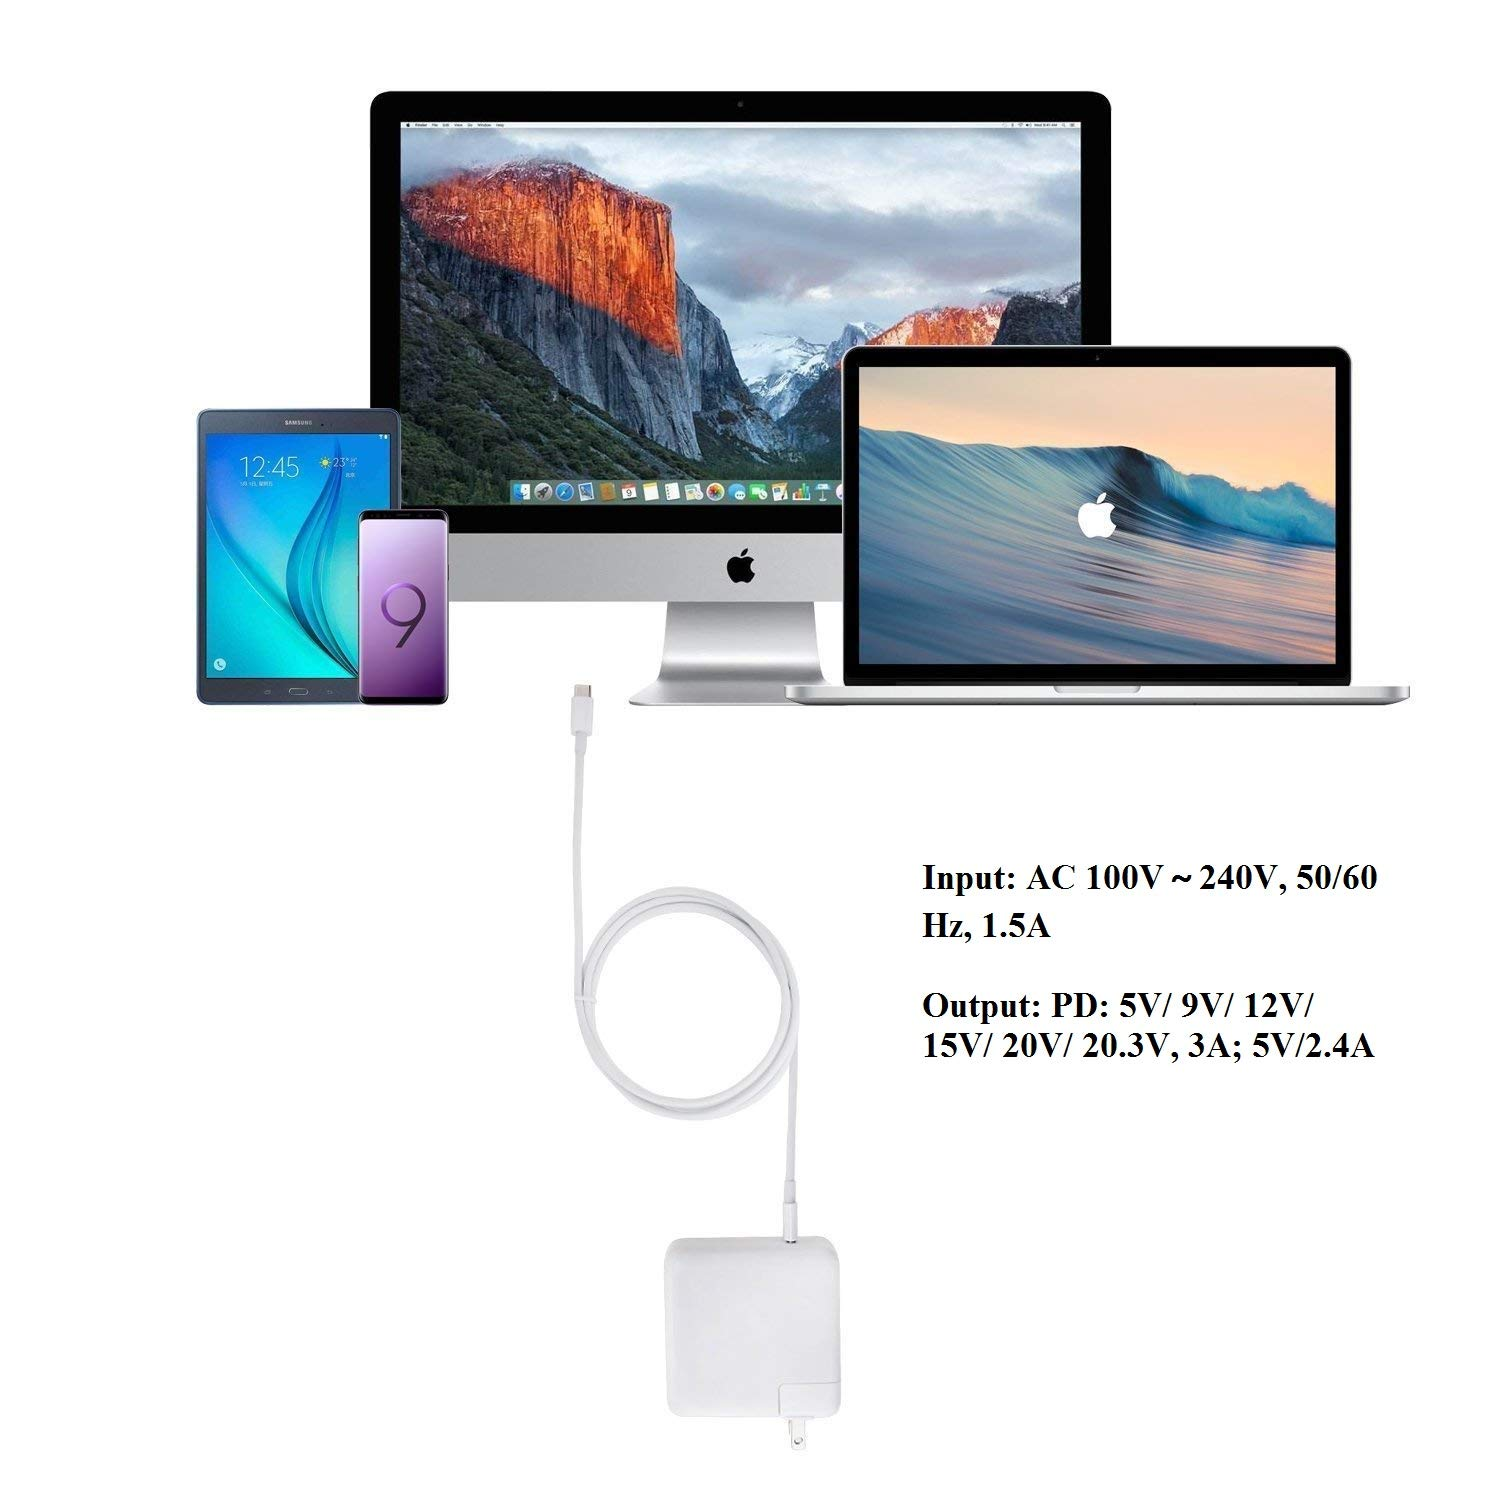 GSNOW 61W USB-C Power Adapter Charger - Compatible with 2016 2017 to Current MacBook Pro 13 Inch Laptop with Touch Bar Two and Four Thunderbolt 3 Ports MNF72LL/A A1706- with Type C Charge Cable by GSNOW (Image #6)